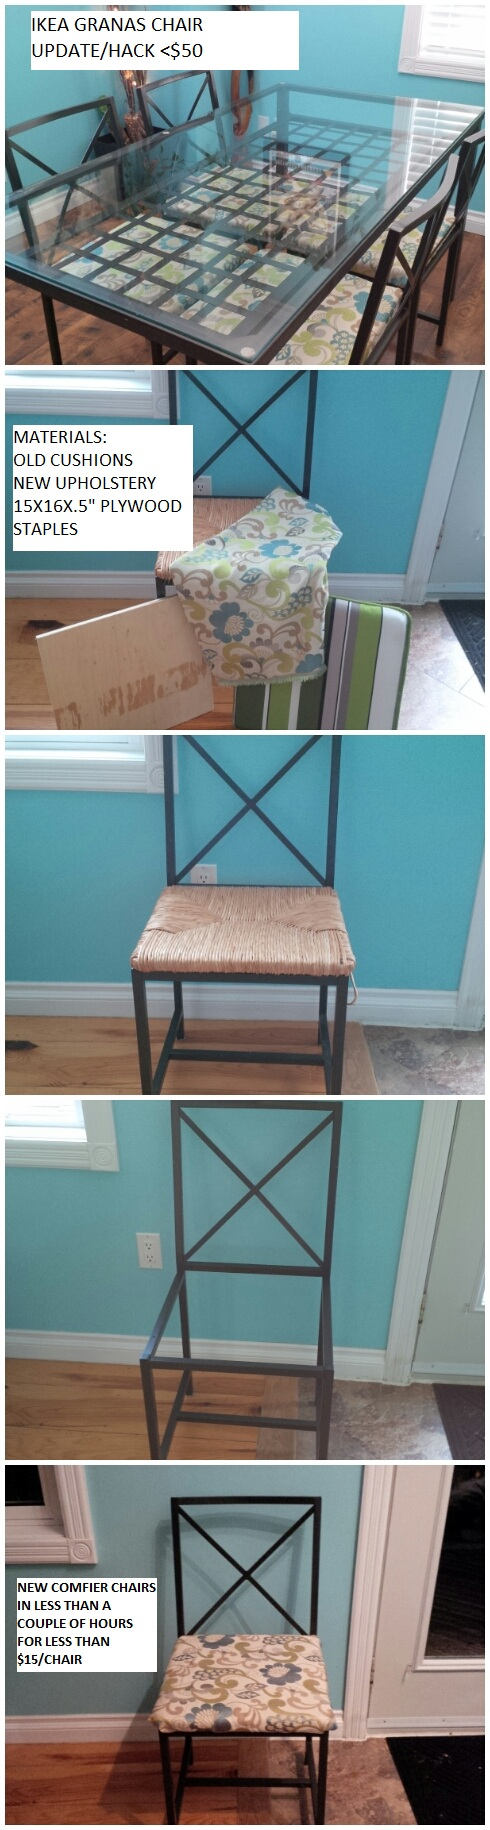 Remarkable My First Ikea Hack Our Granas Chairs Were In Desperate Beutiful Home Inspiration Aditmahrainfo